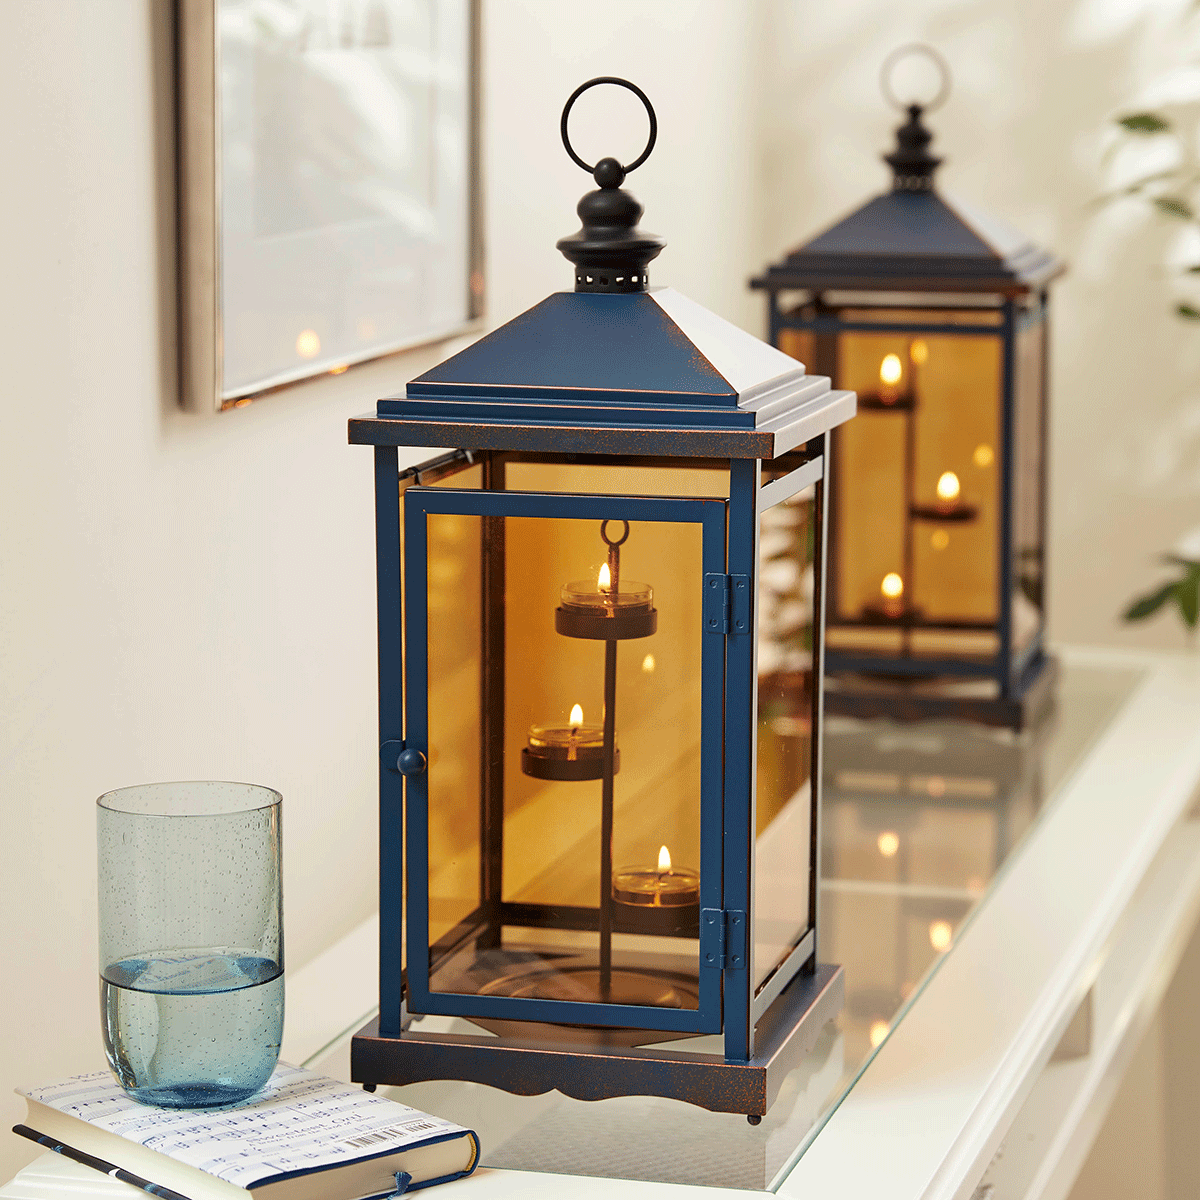 Rustic Lantern In 2020 Rustic Candle Lanterns Rustic Lanterns Rustic Candles